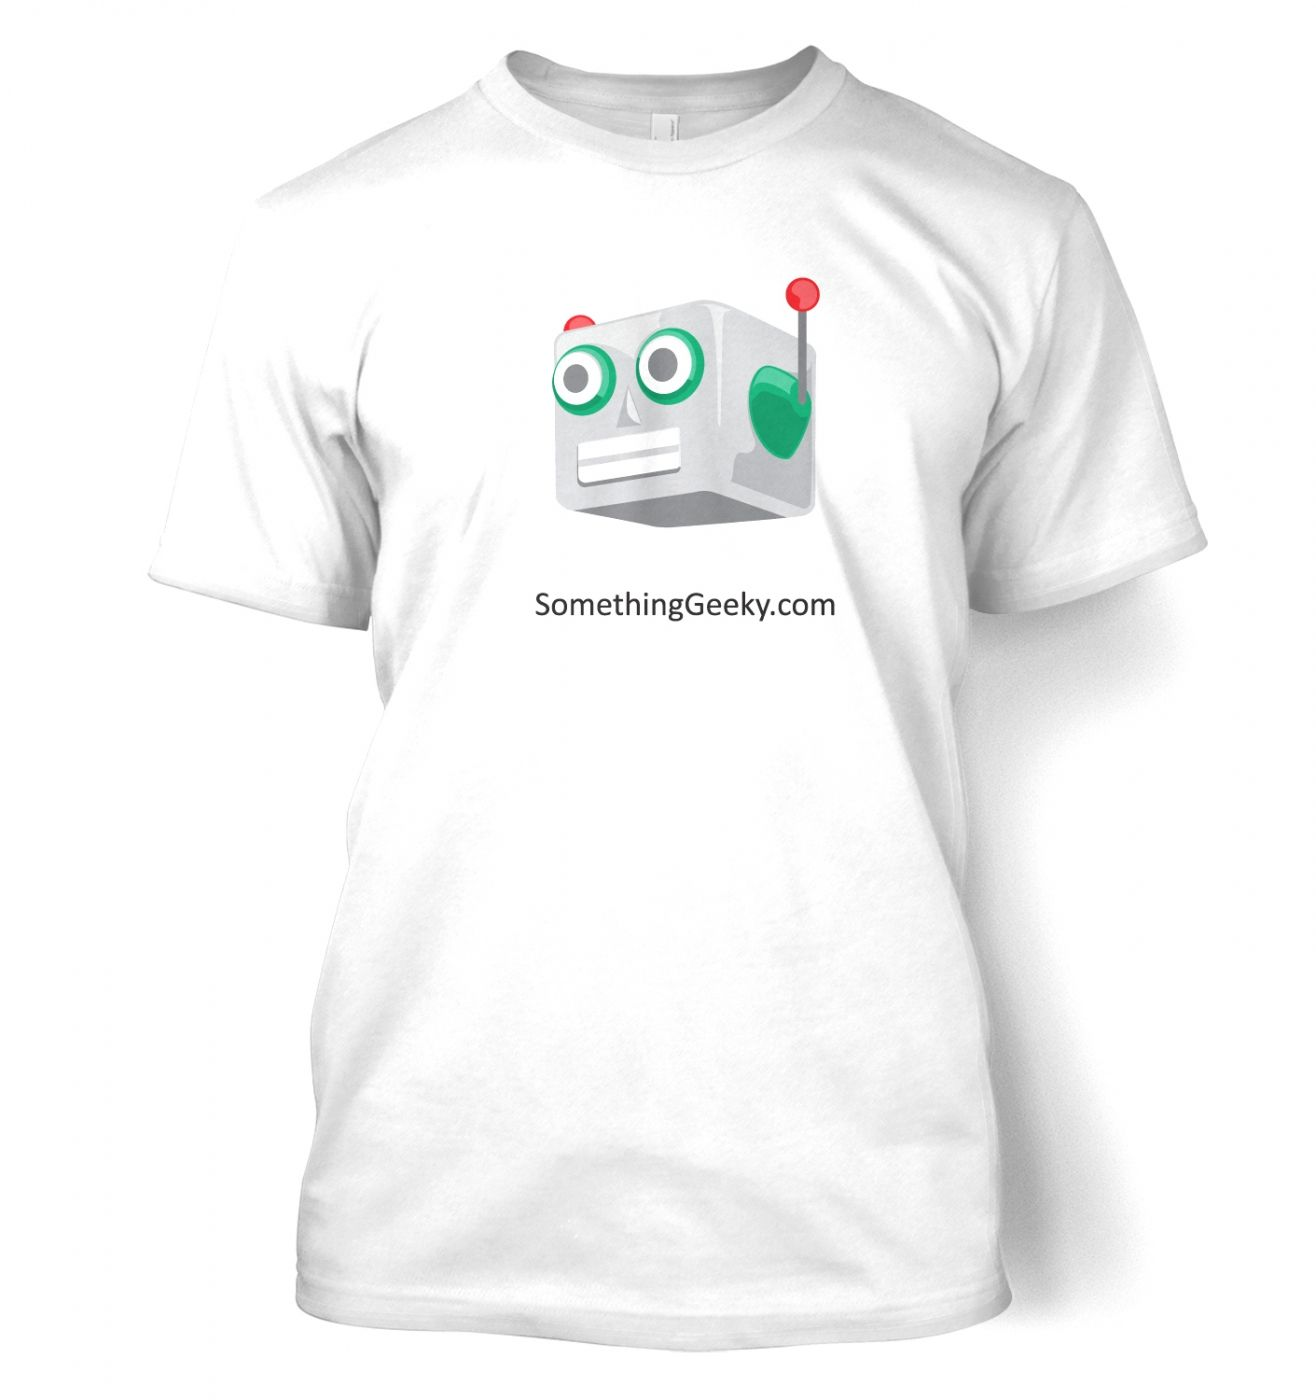 Wear the SomethingGeeky Robot with pride!